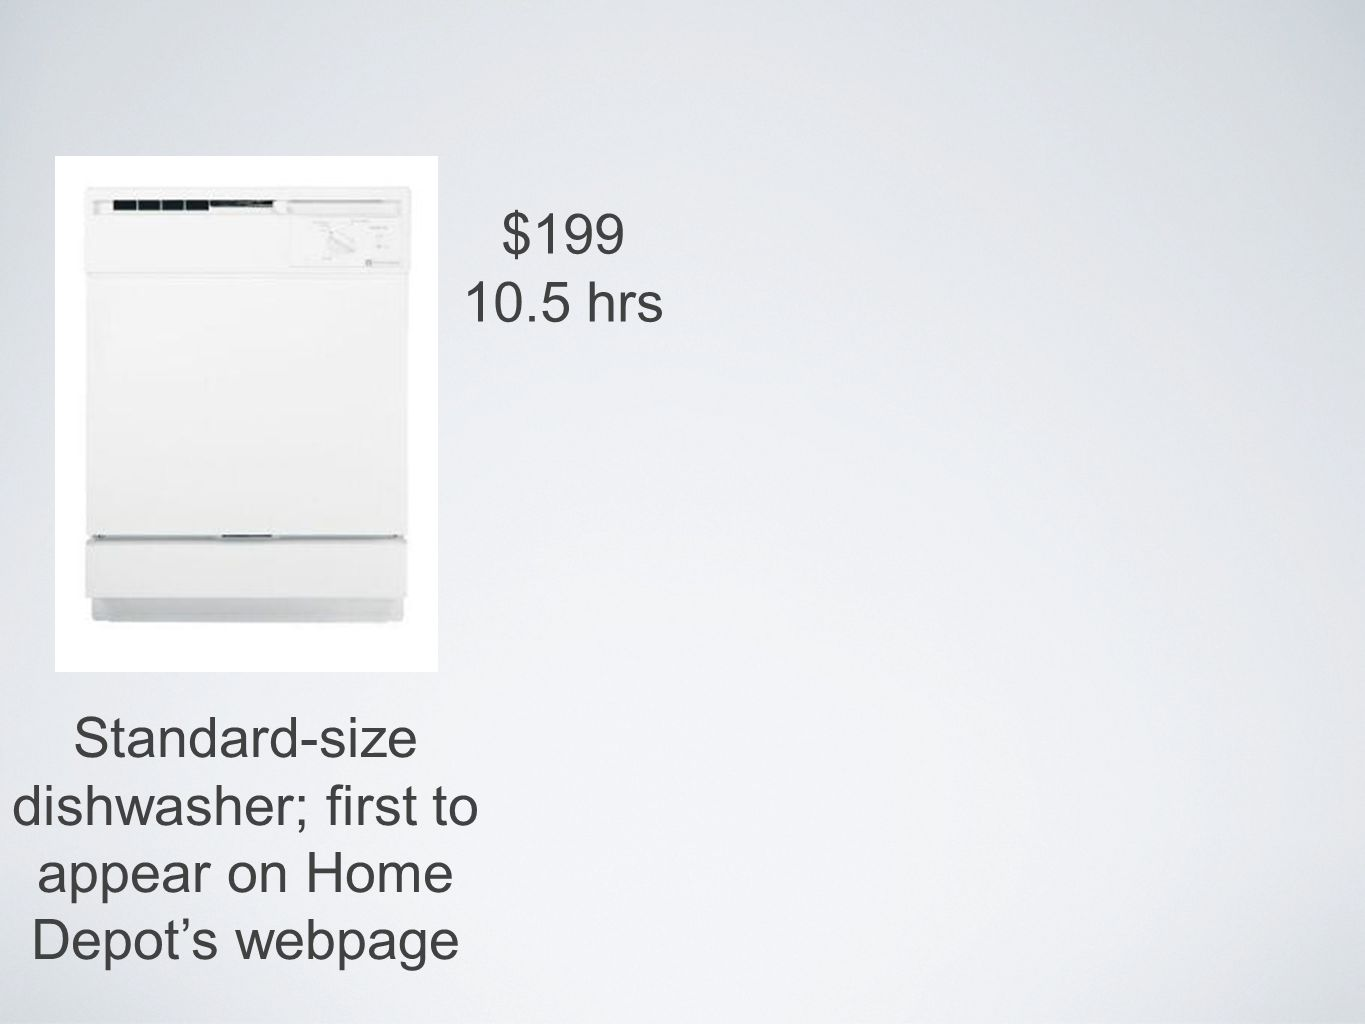 Standard-size dishwasher; first to appear on Home Depots webpage $199 10.5 hrs